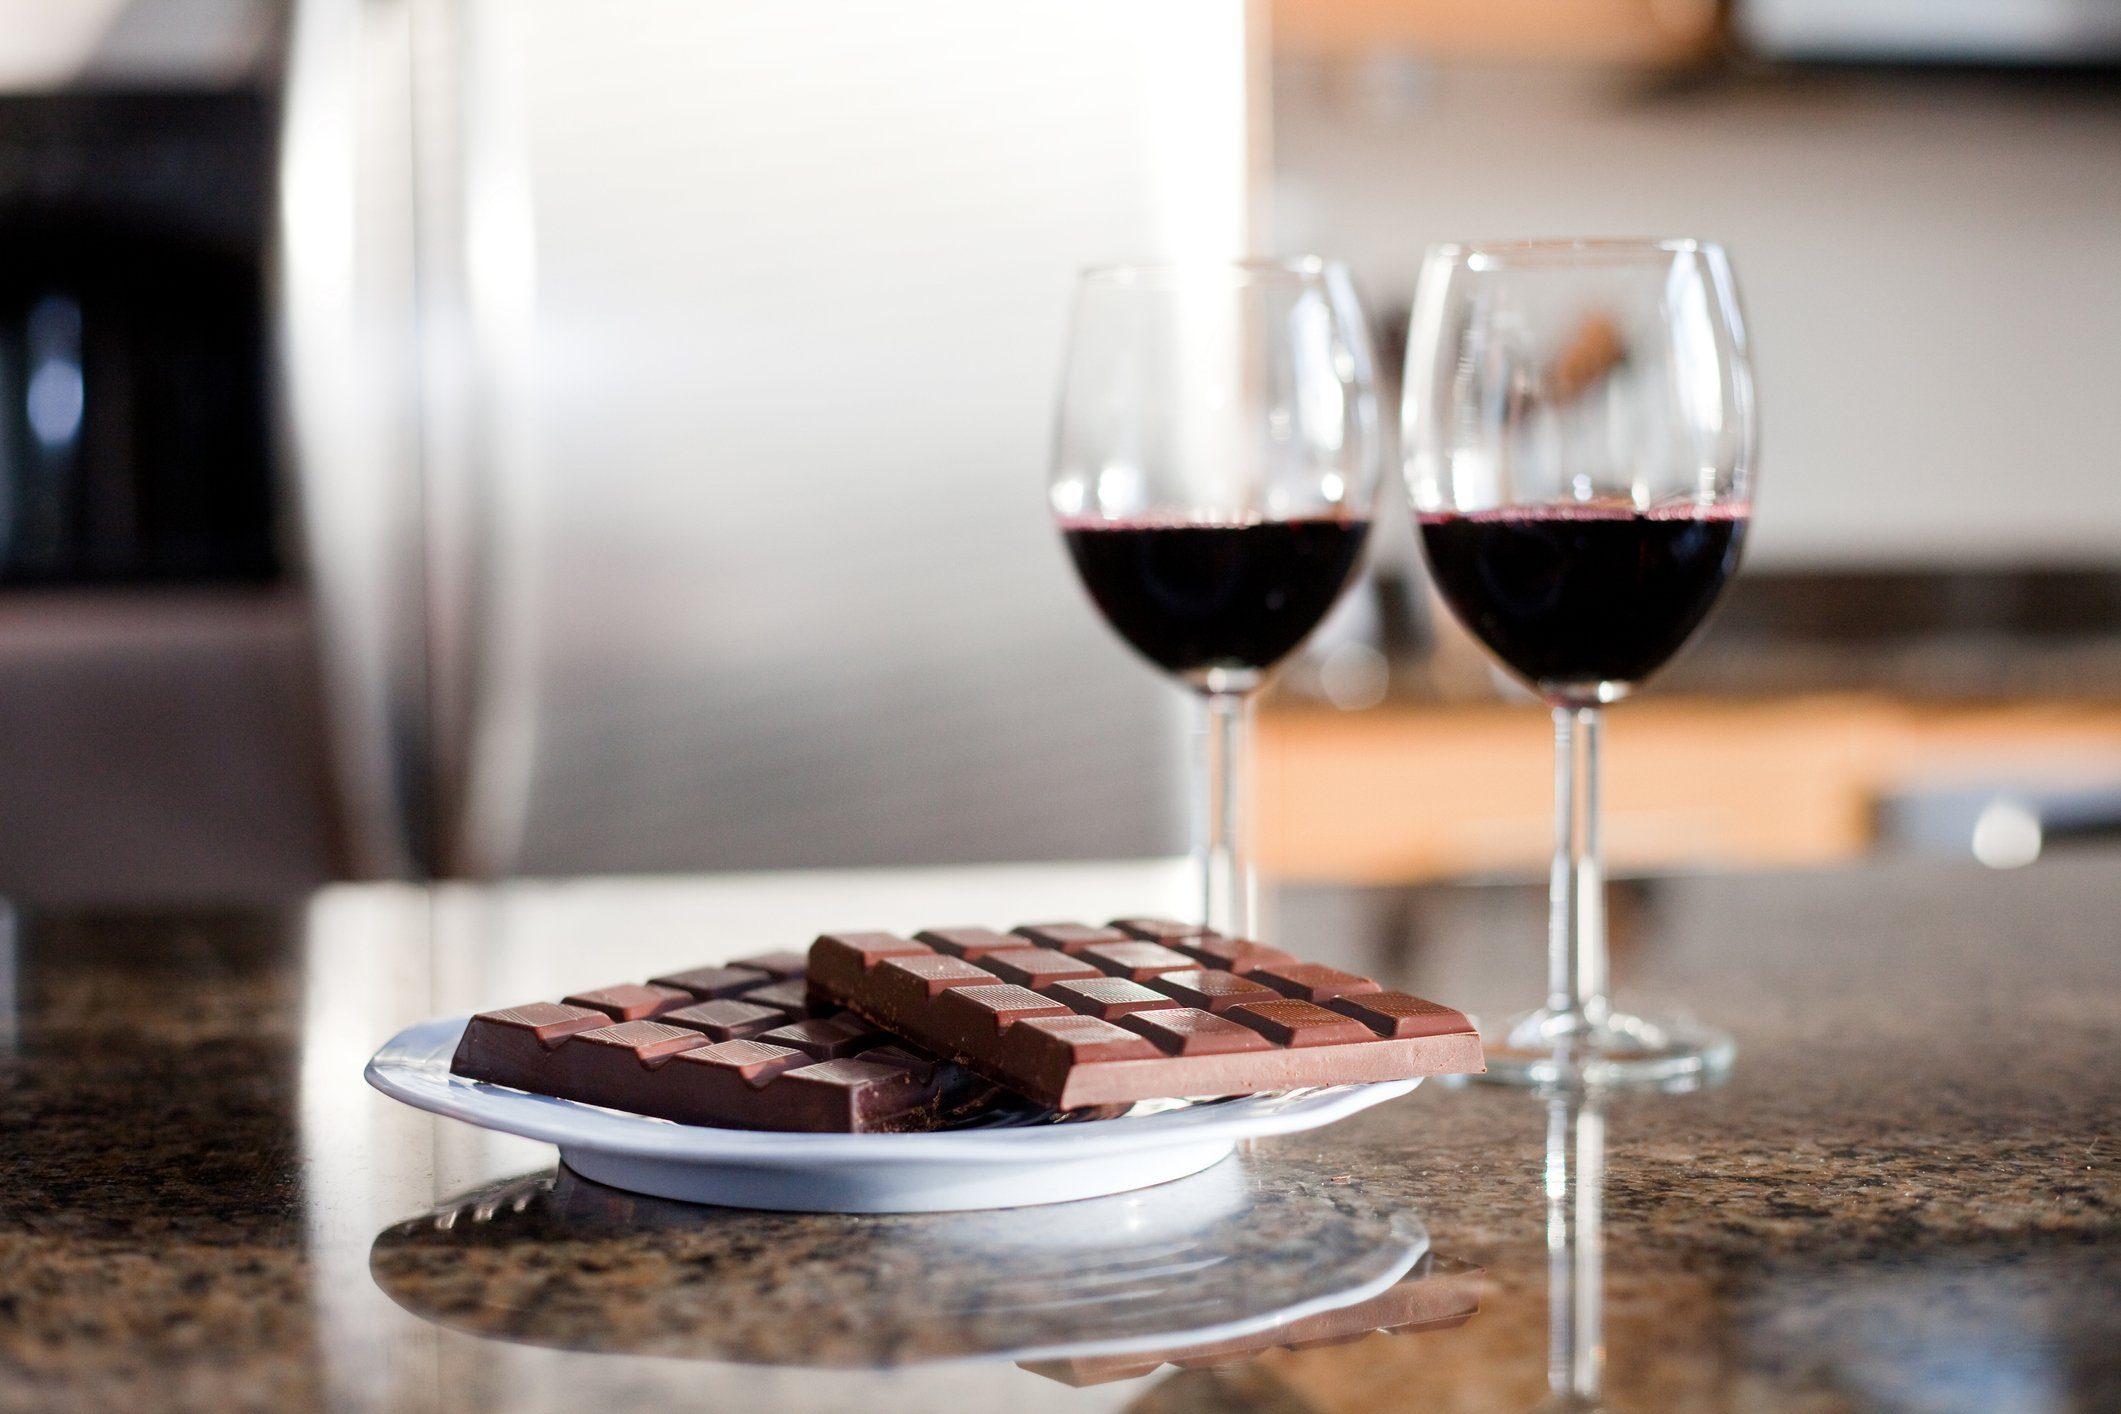 mediterranean diet | wine and chocolate